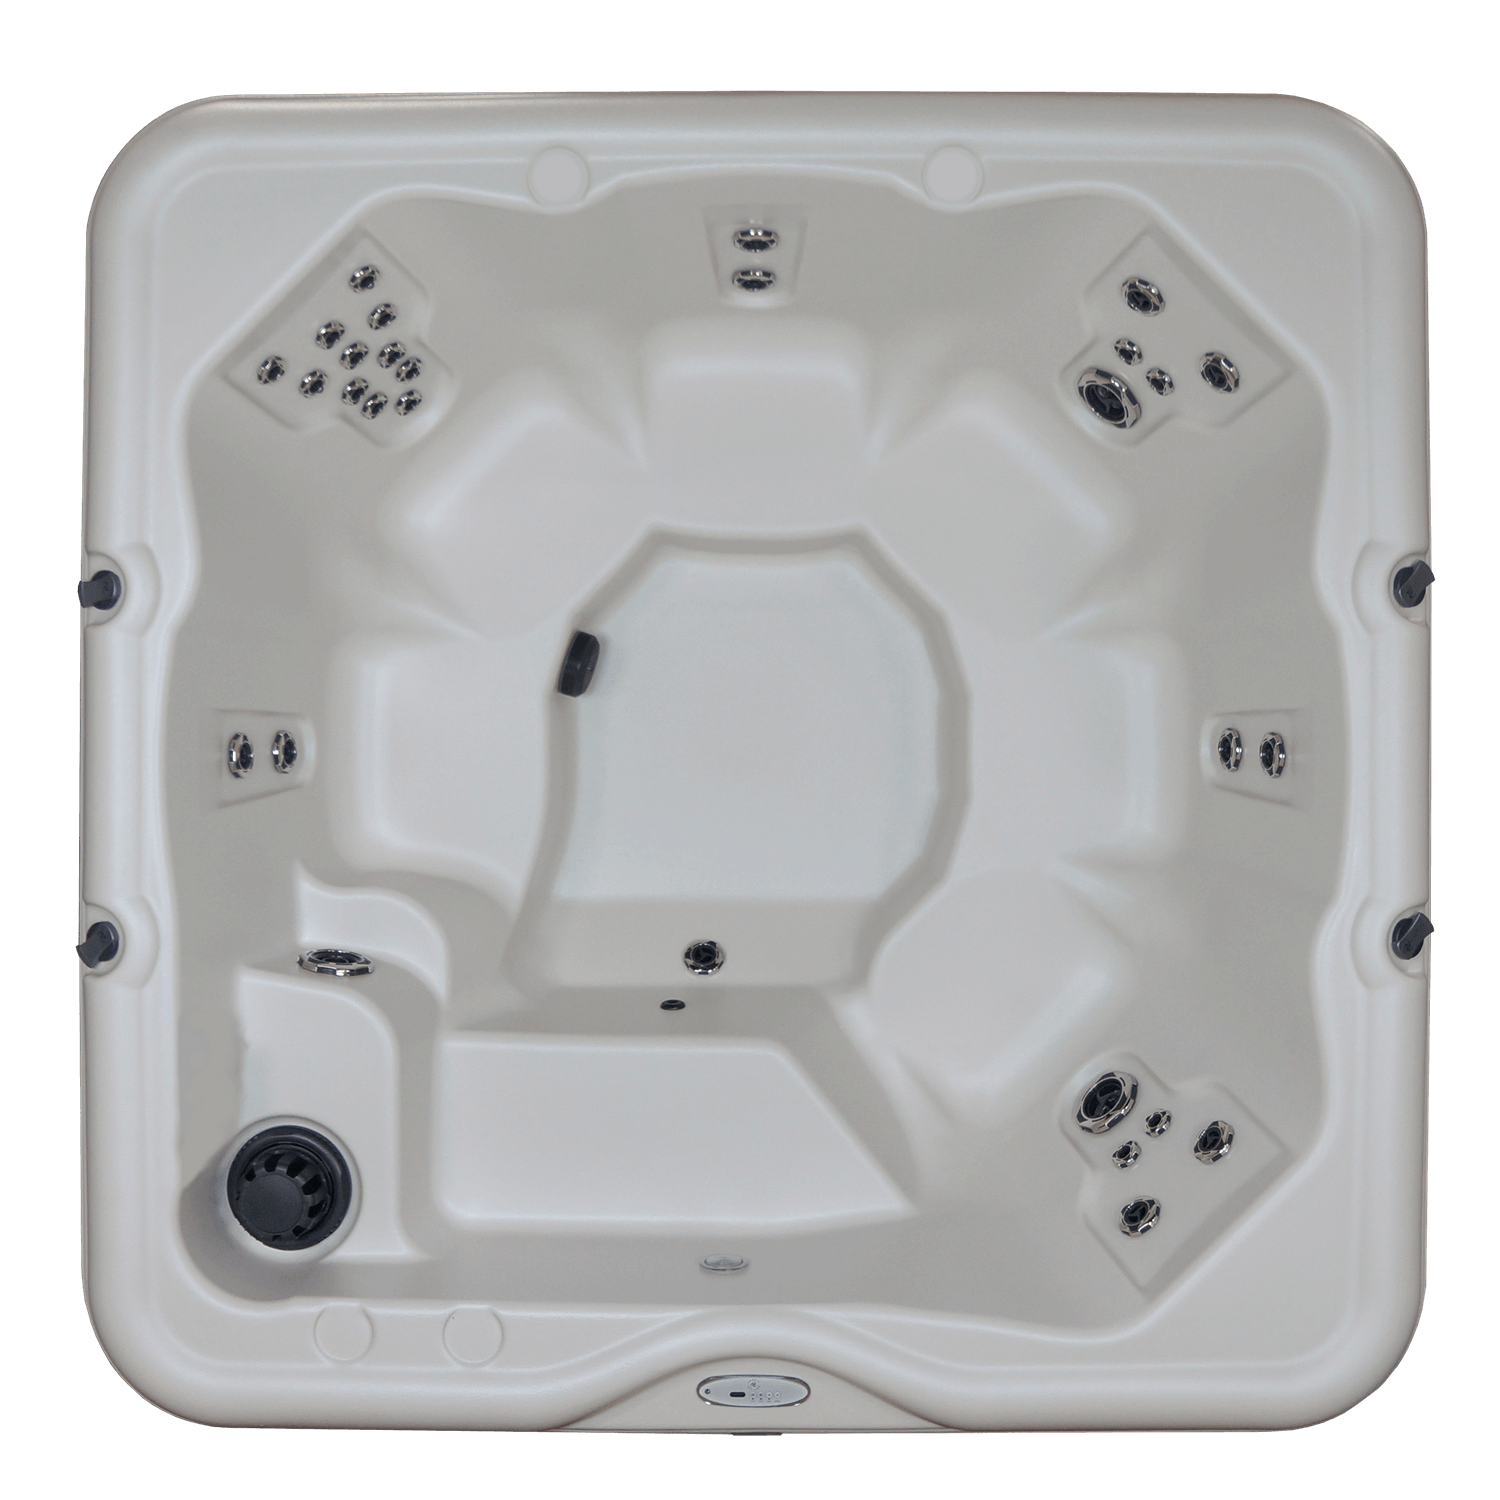 Cove Spas HP4 top view